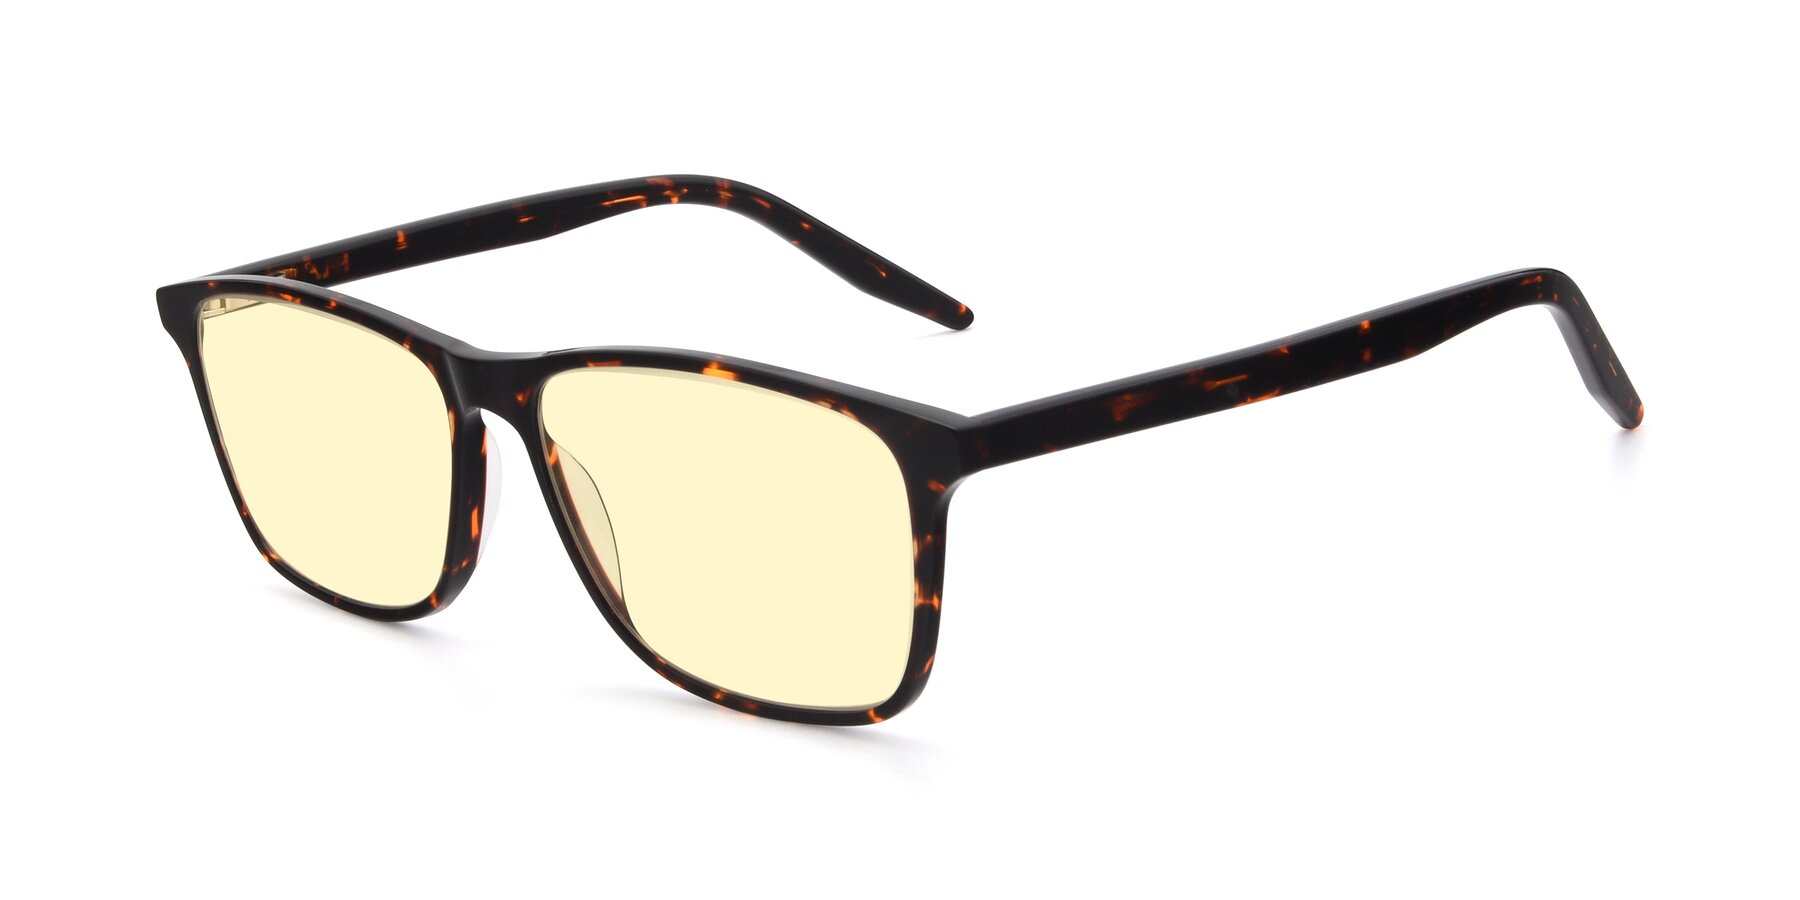 Angle of 17500 in Tortoise with Light Yellow Tinted Lenses